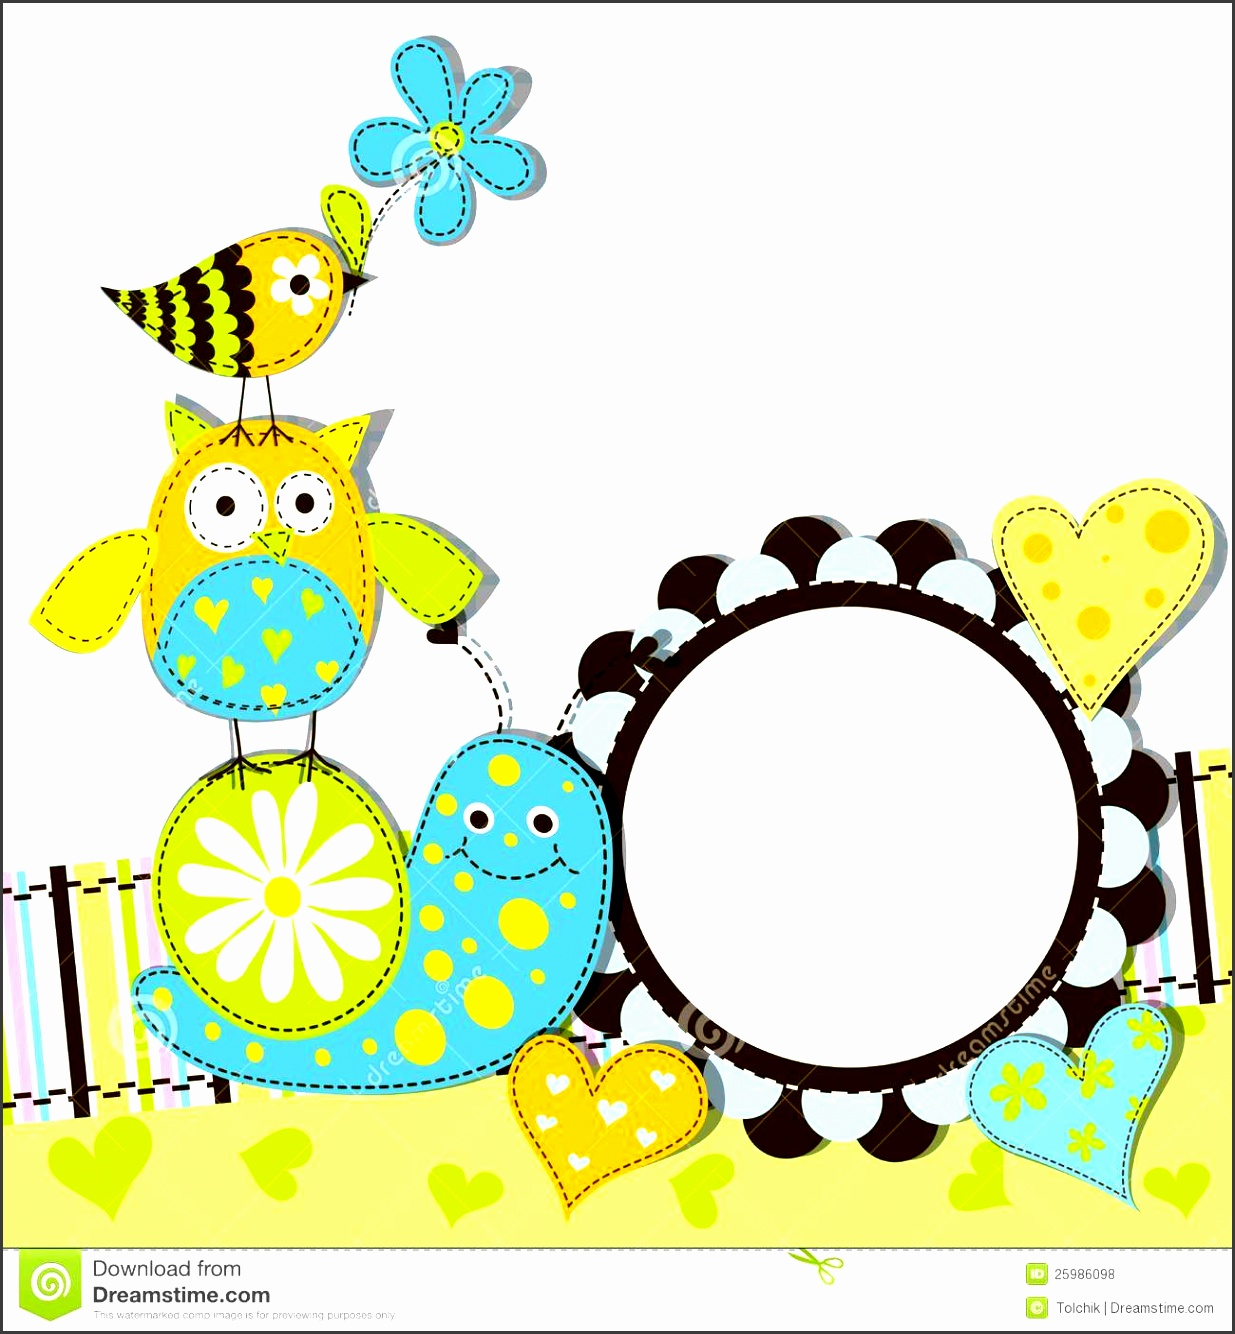 card invitation design ideas free greeting card templates square blue yellow owl bird snail and